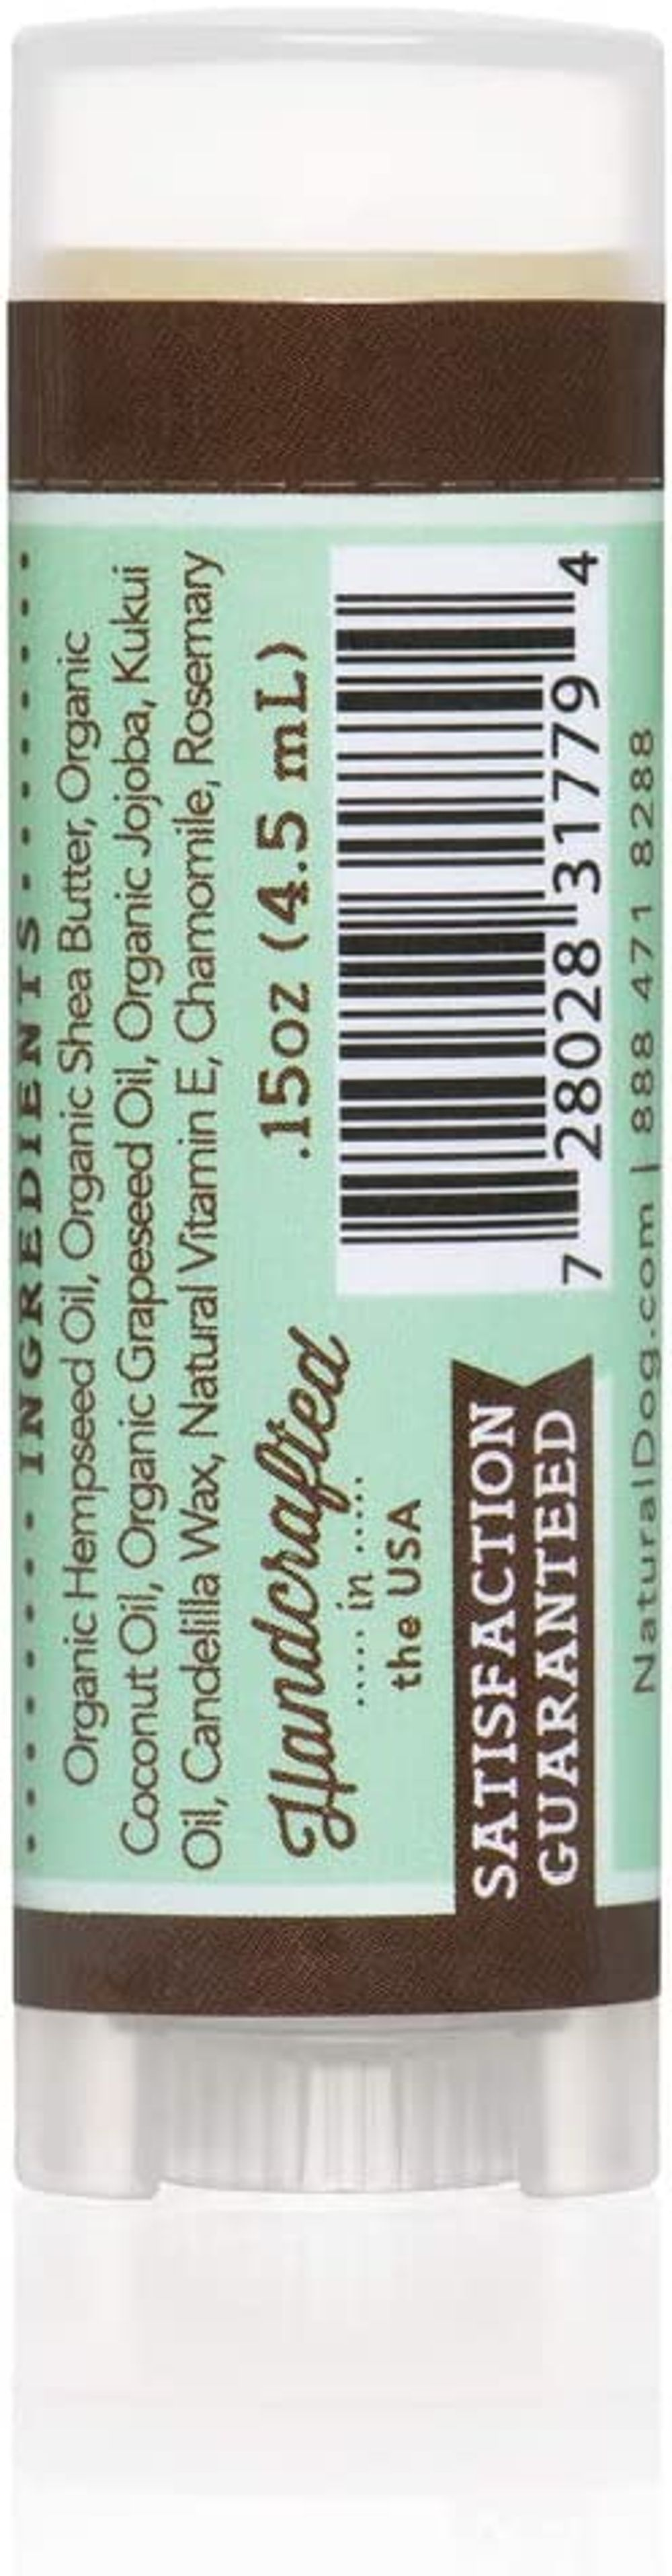 Natural Dog Company – Snout Soother | All-Natural Remedy for Chapped, Crusty, and Dry Dog Noses | Veterinarian Recommended – 0.15 Oz Trial Stick